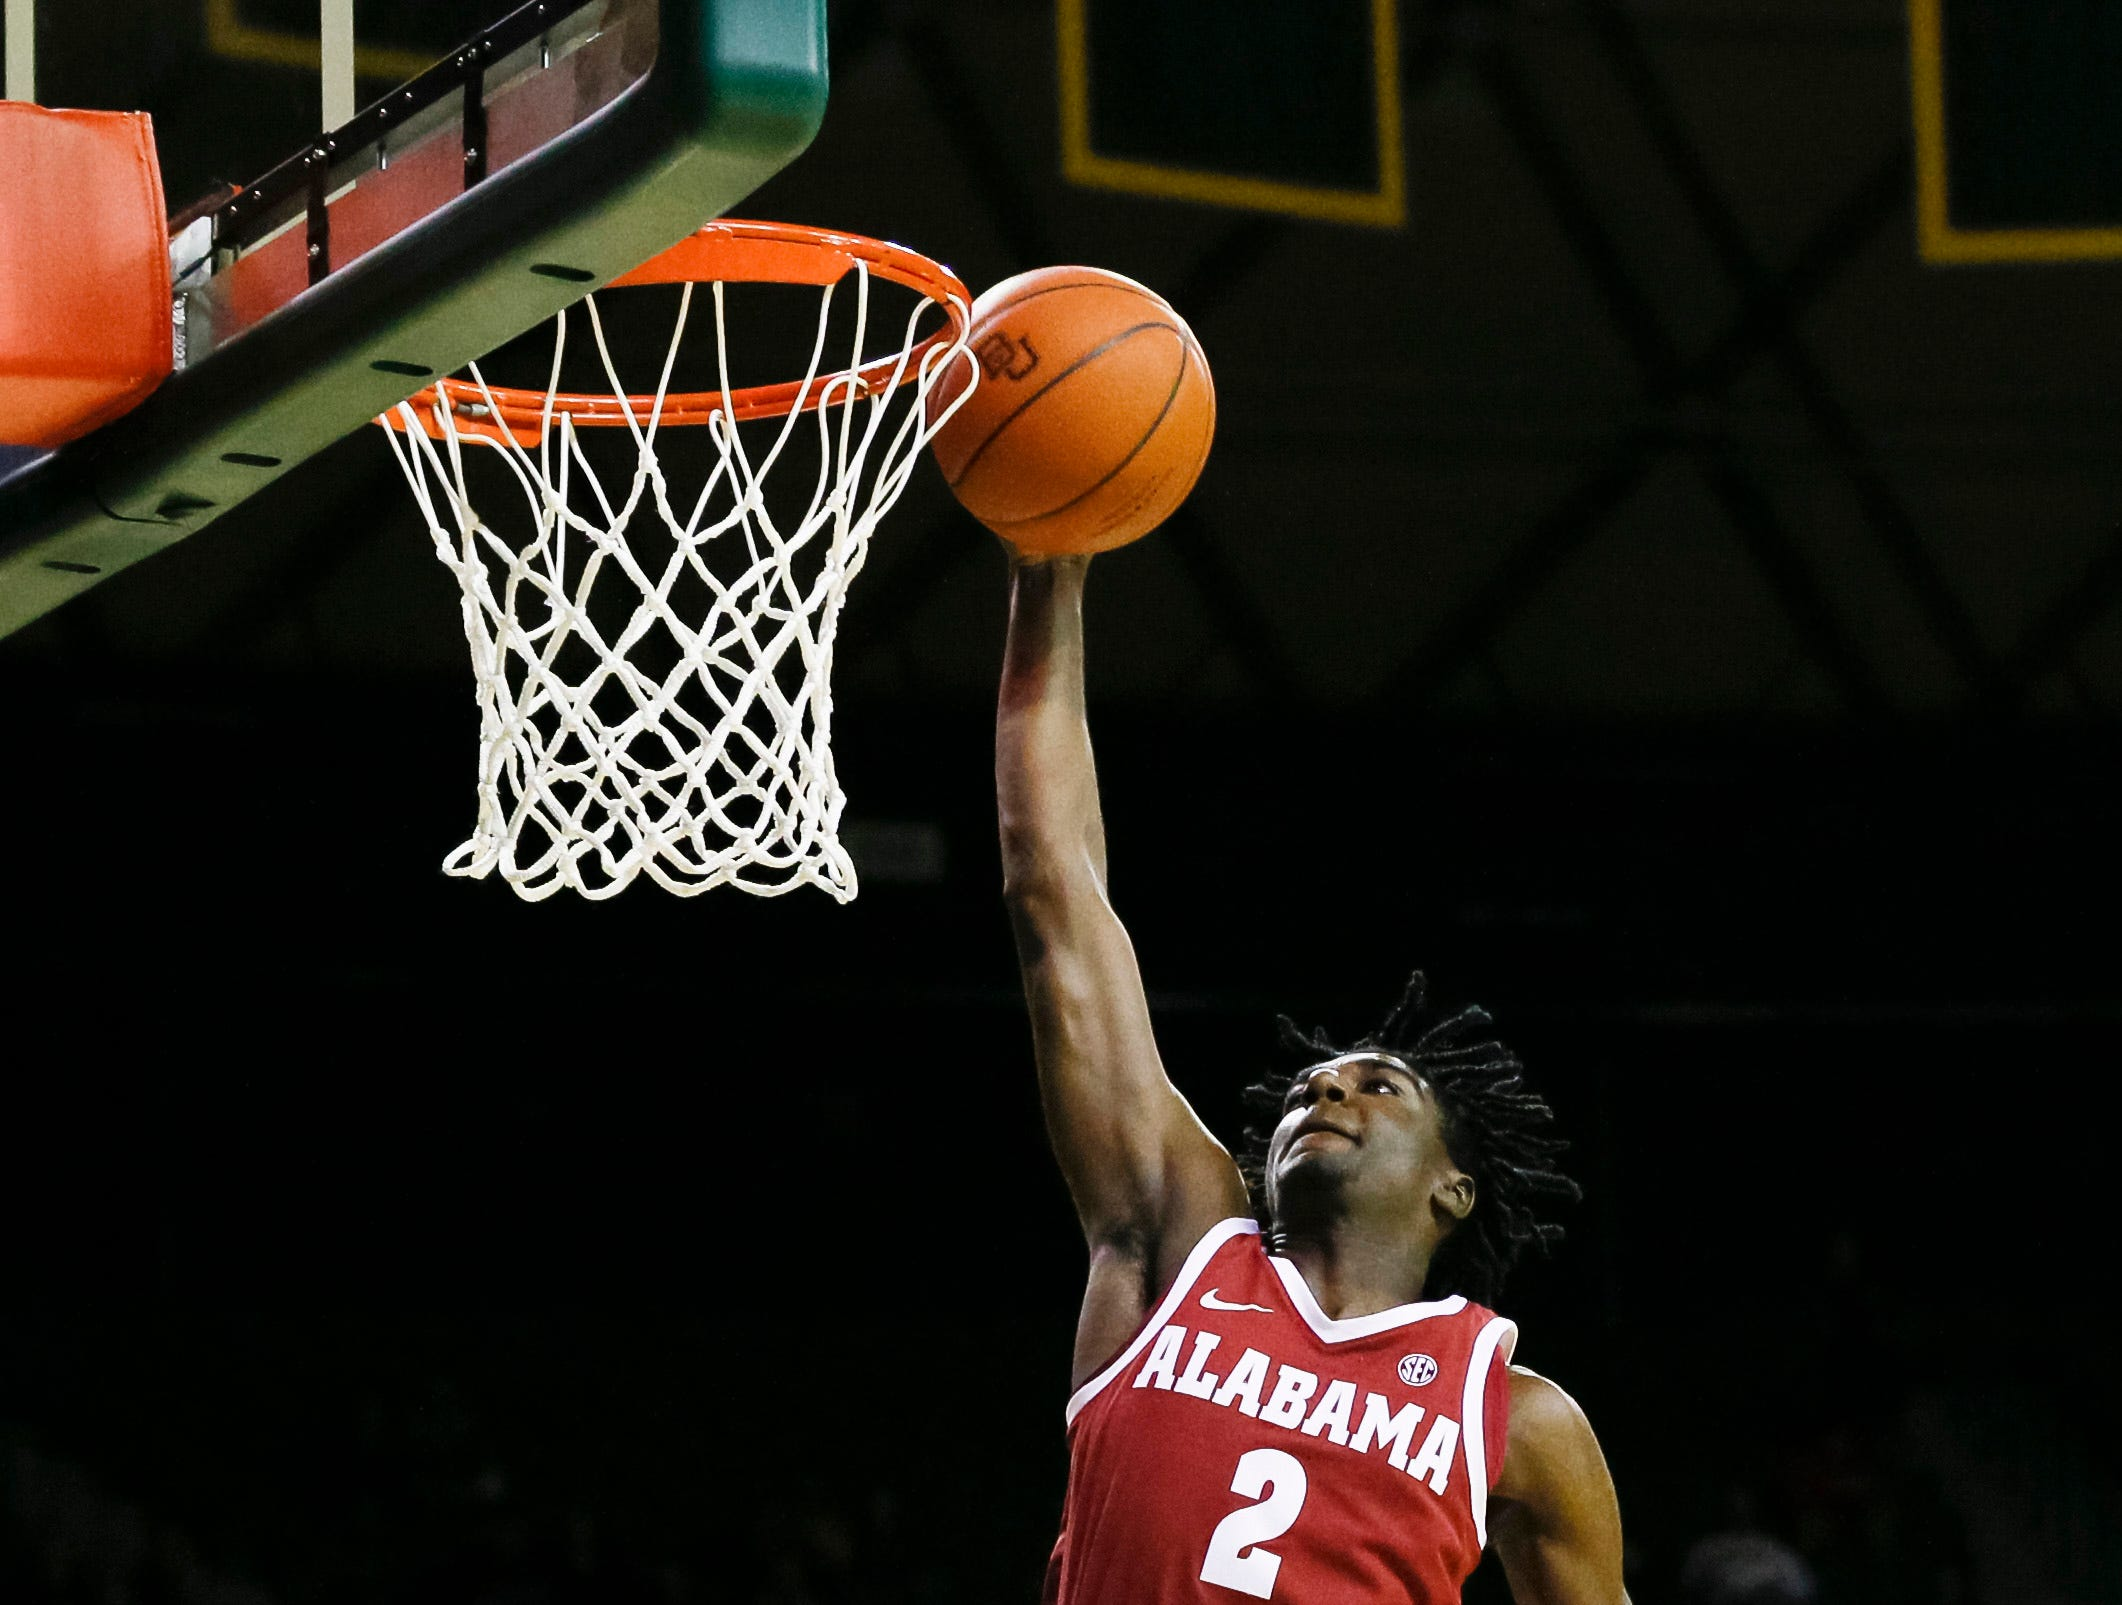 Jan 26, 2019; Waco, TX, USA; Alabama Crimson Tide guard Kira Lewis Jr. (2) shoots the ball against the Baylor Bears during the first half at Ferrell Center. Mandatory Credit: Ray Carlin-USA TODAY Sports